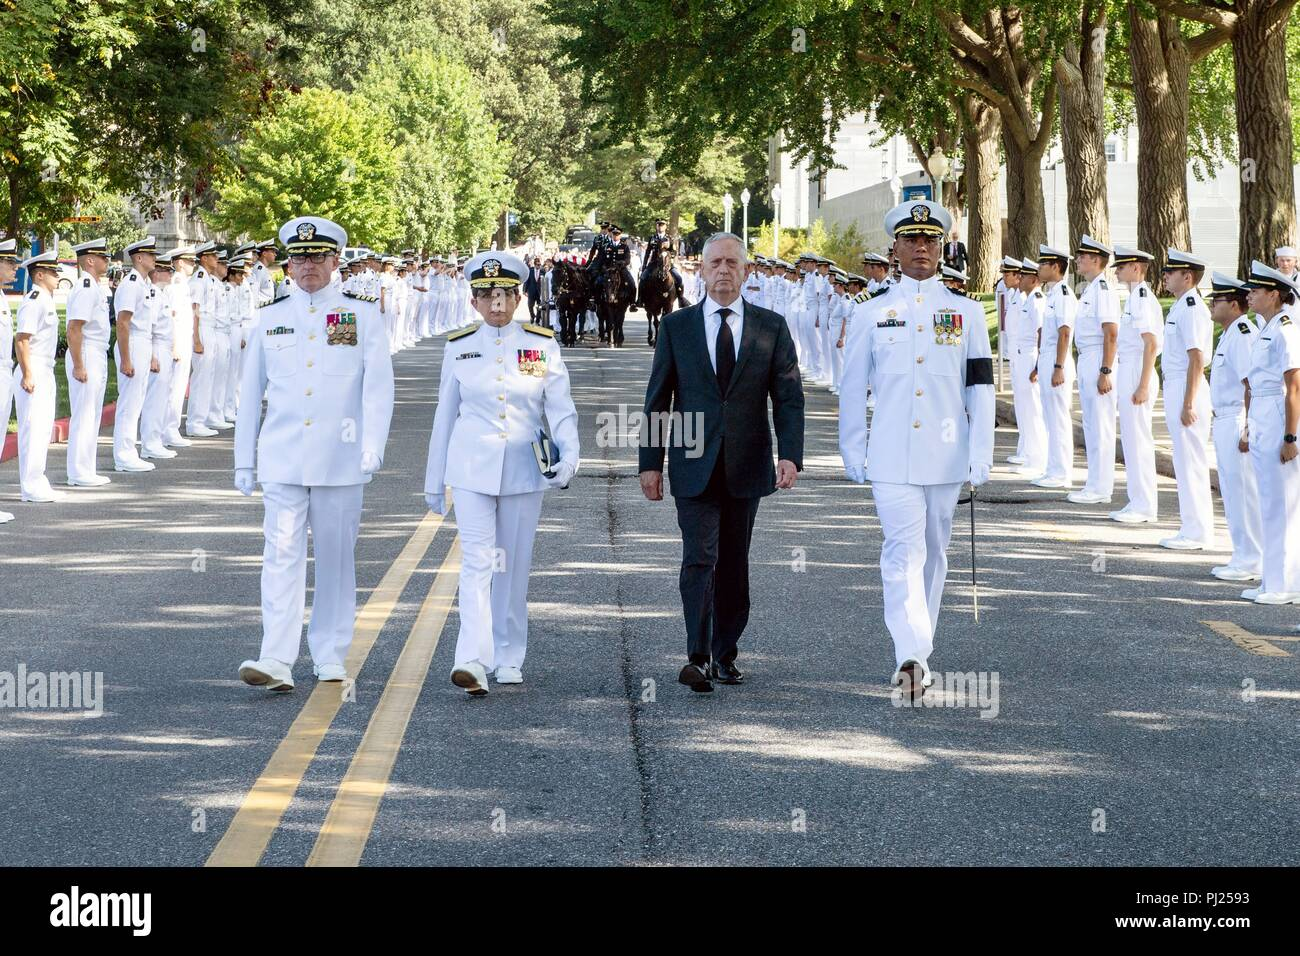 U.S Secretary of Defense James Mattis, second right, leads a procession of the flag draped casket of Sen. John McCain following on a horse-drawn caisson to the United States Naval Academy Cemetery for his burial service September 2, 2018 in Annapolis, Maryland. John S. McCain, III graduated from the United States Naval Academy in 1958. He was a pilot in the United States Navy, a prisoner of war in Vietnam, a Congressmen and Senator and twice presidential candidate. He received numerous awards, including the Silver Star, Legion of Merit, Purple Heart, and Distinguished Flying Cross. - Stock Image